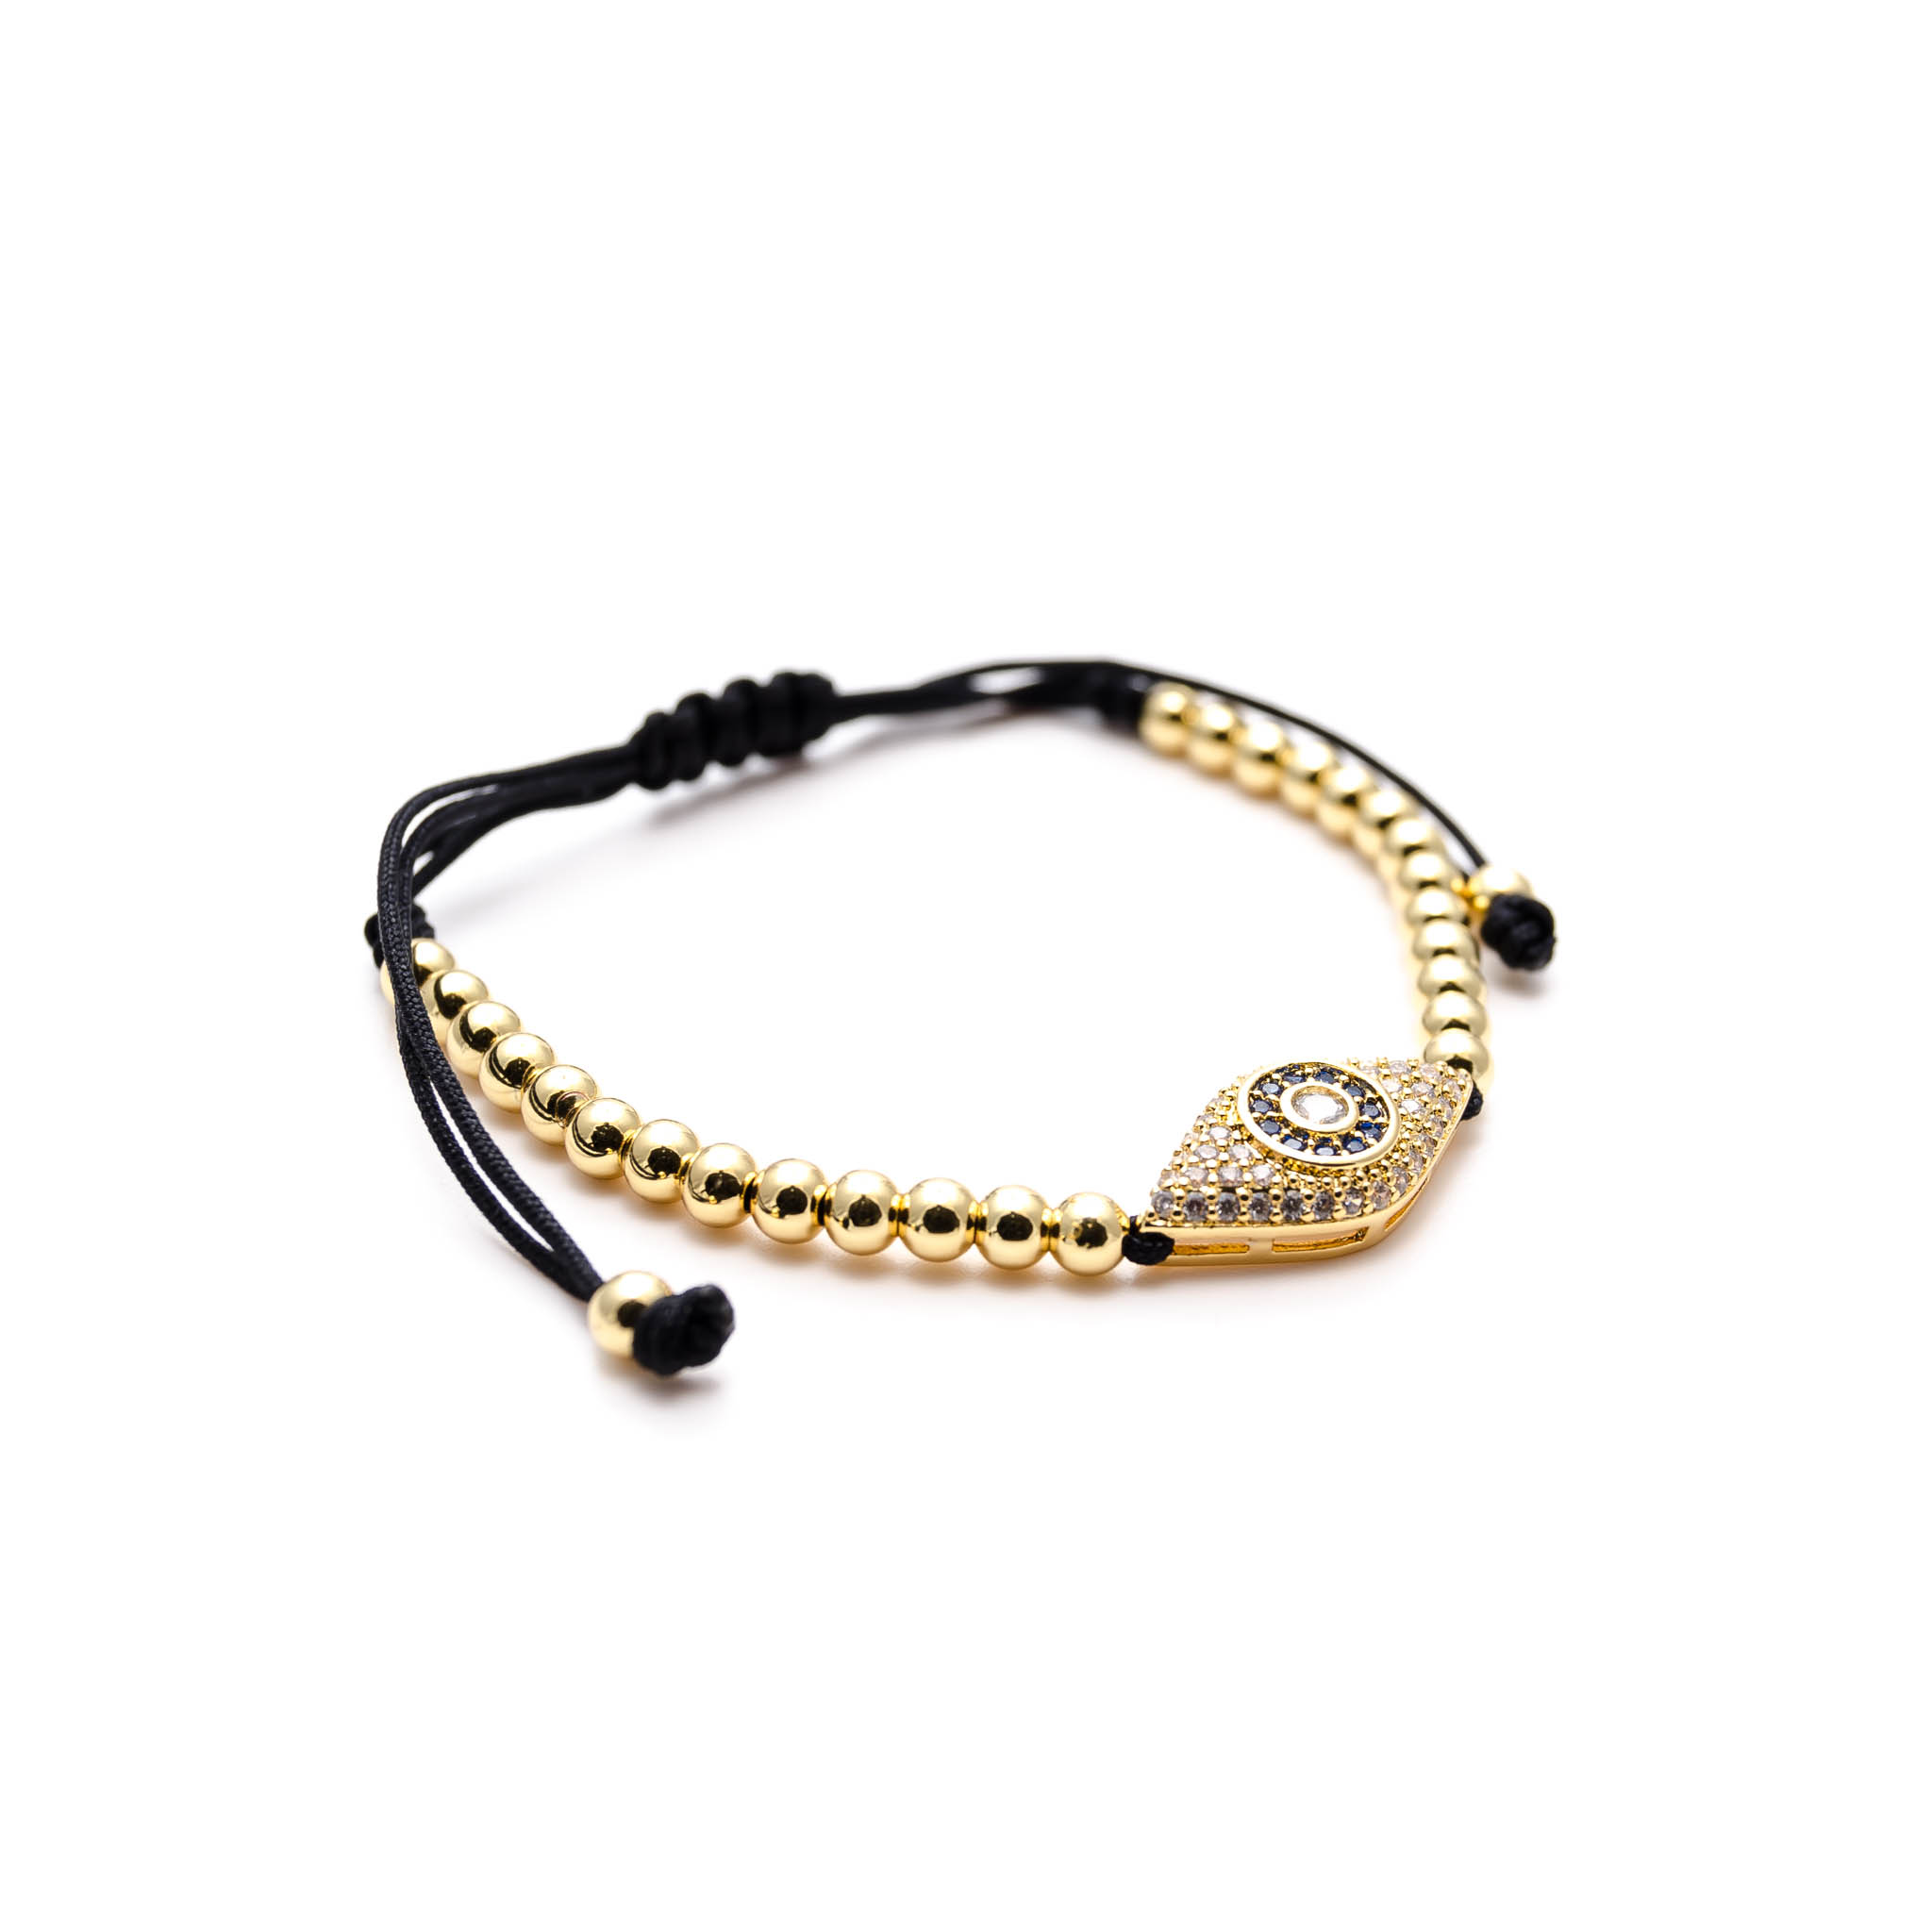 62b0d3827cf99 100%. Home   Shop   Oro Collection   24K Gold Evil Eye Charm Macrame  Bracelet